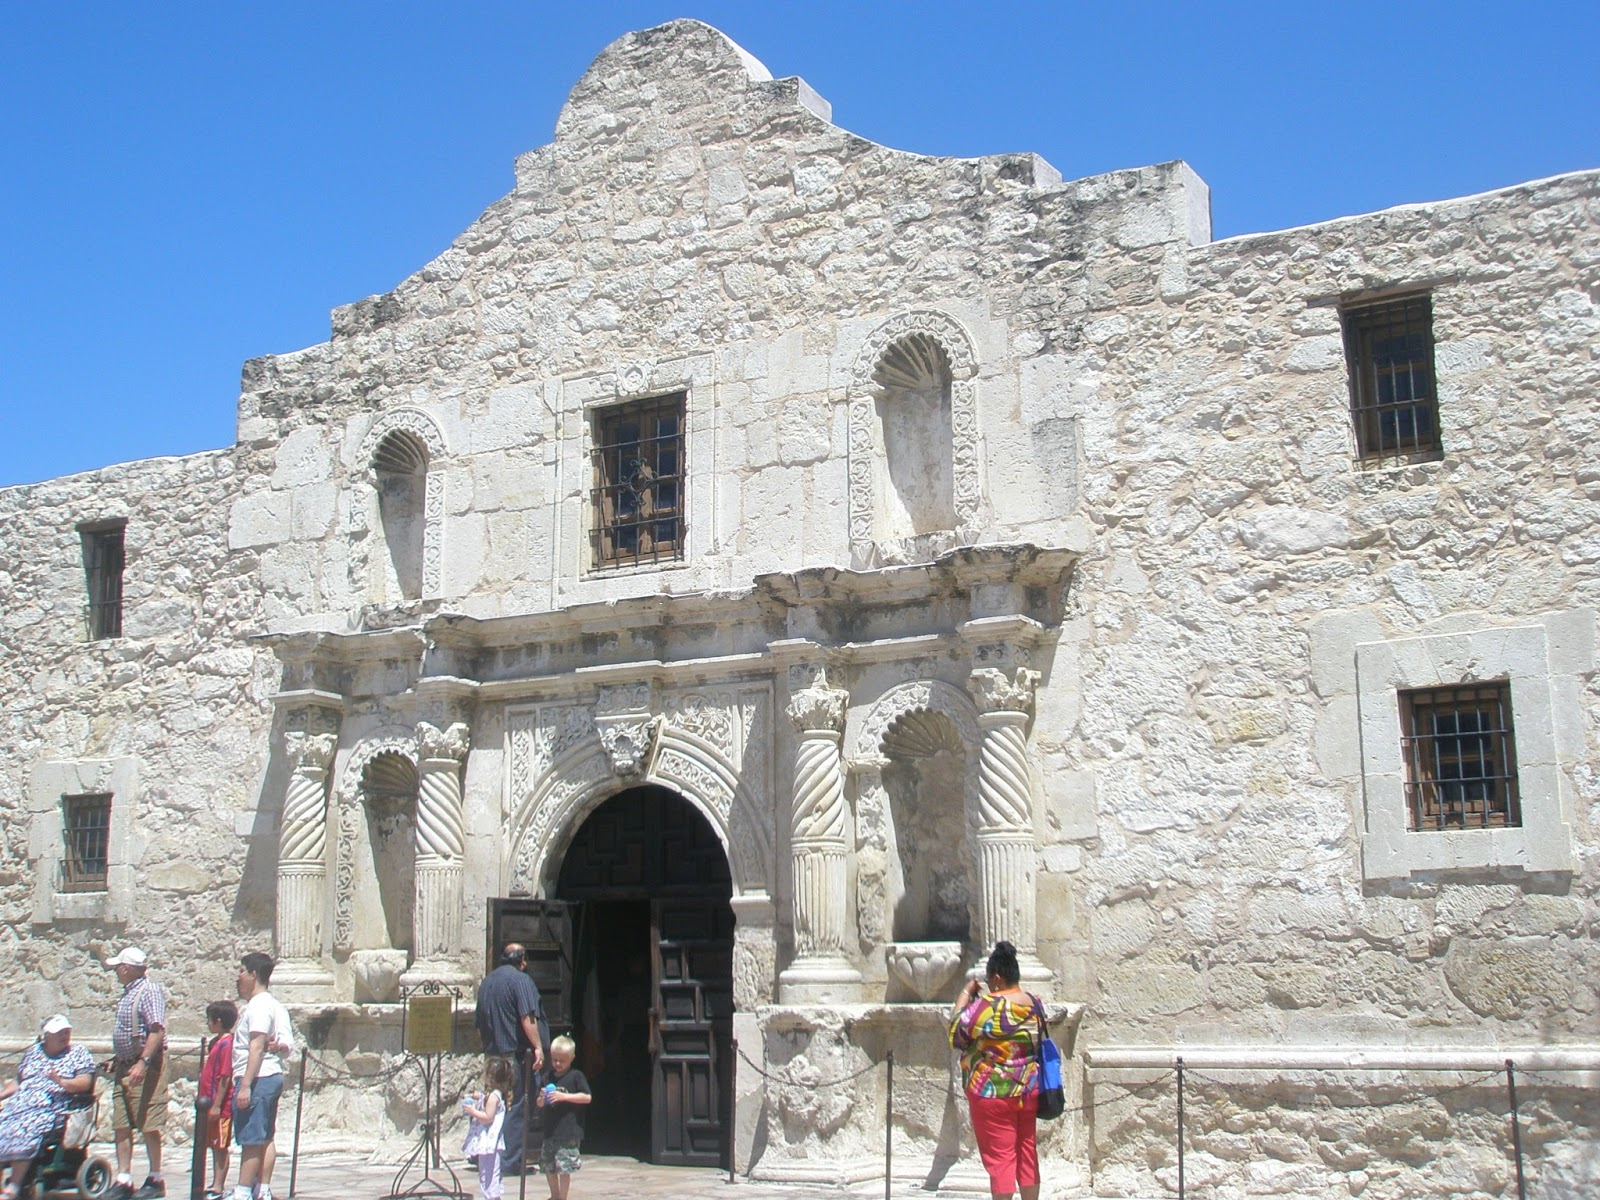 Sweethearts Of The West: Visiting The Alamo ~by Tanya Hanson